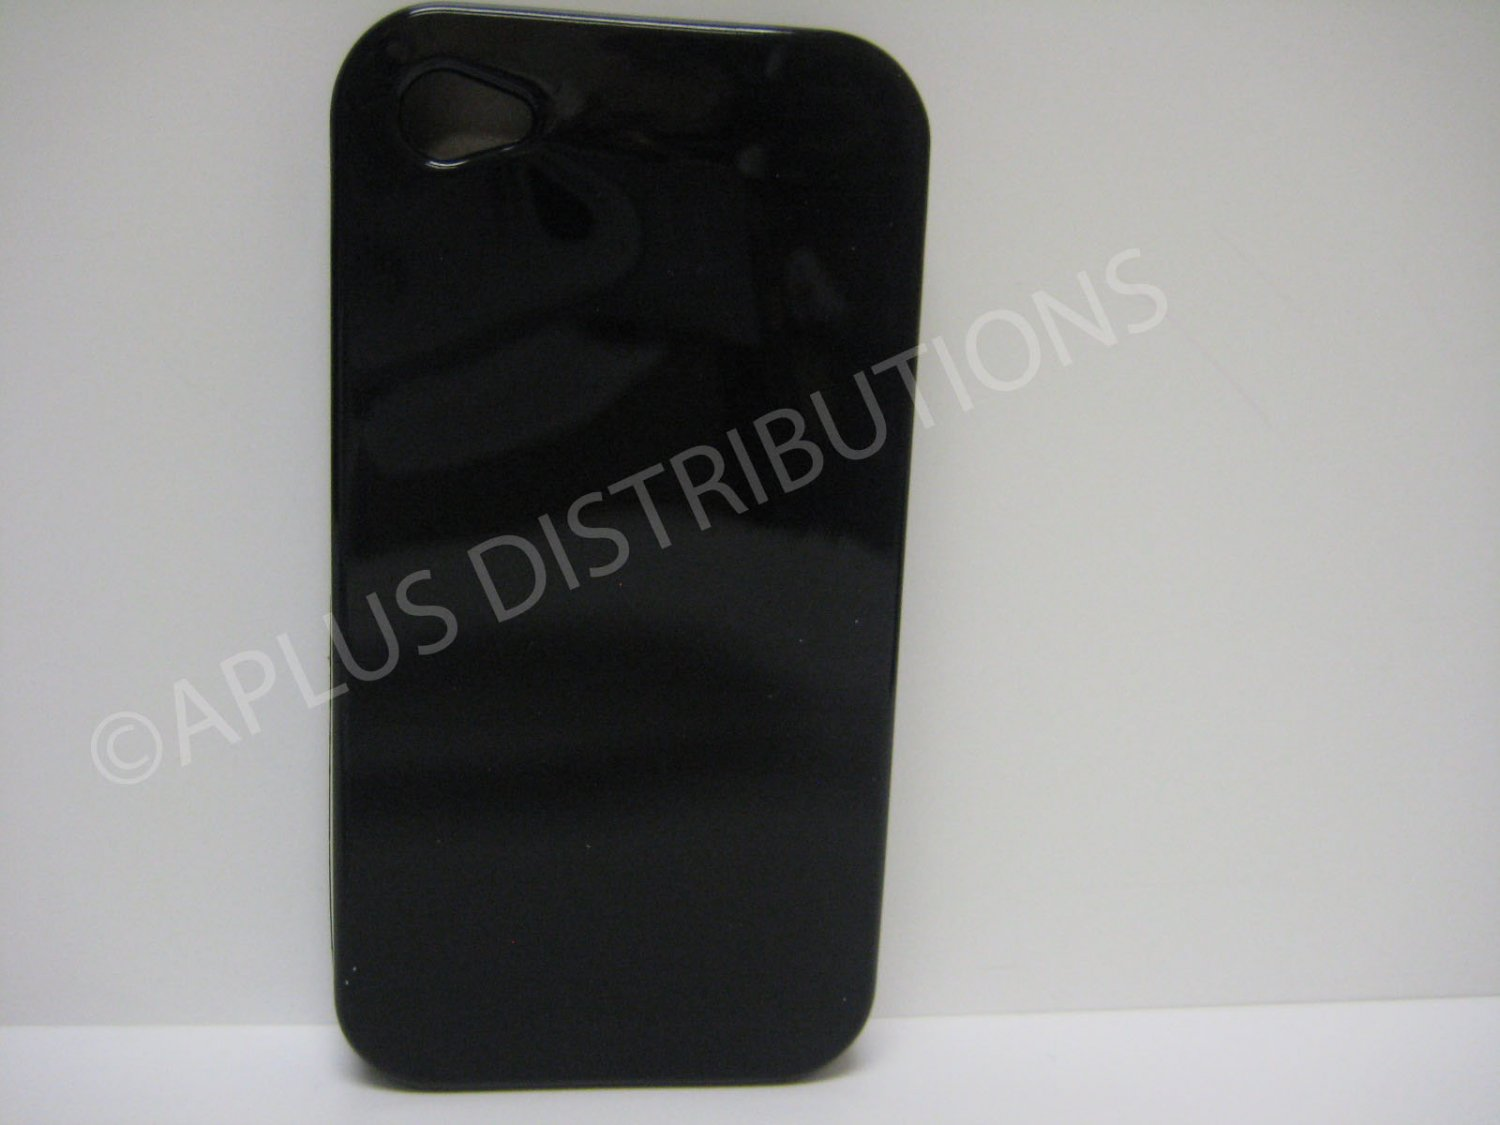 New Black Solid Color Design TPU Cover For iPhone 4 - (0133)